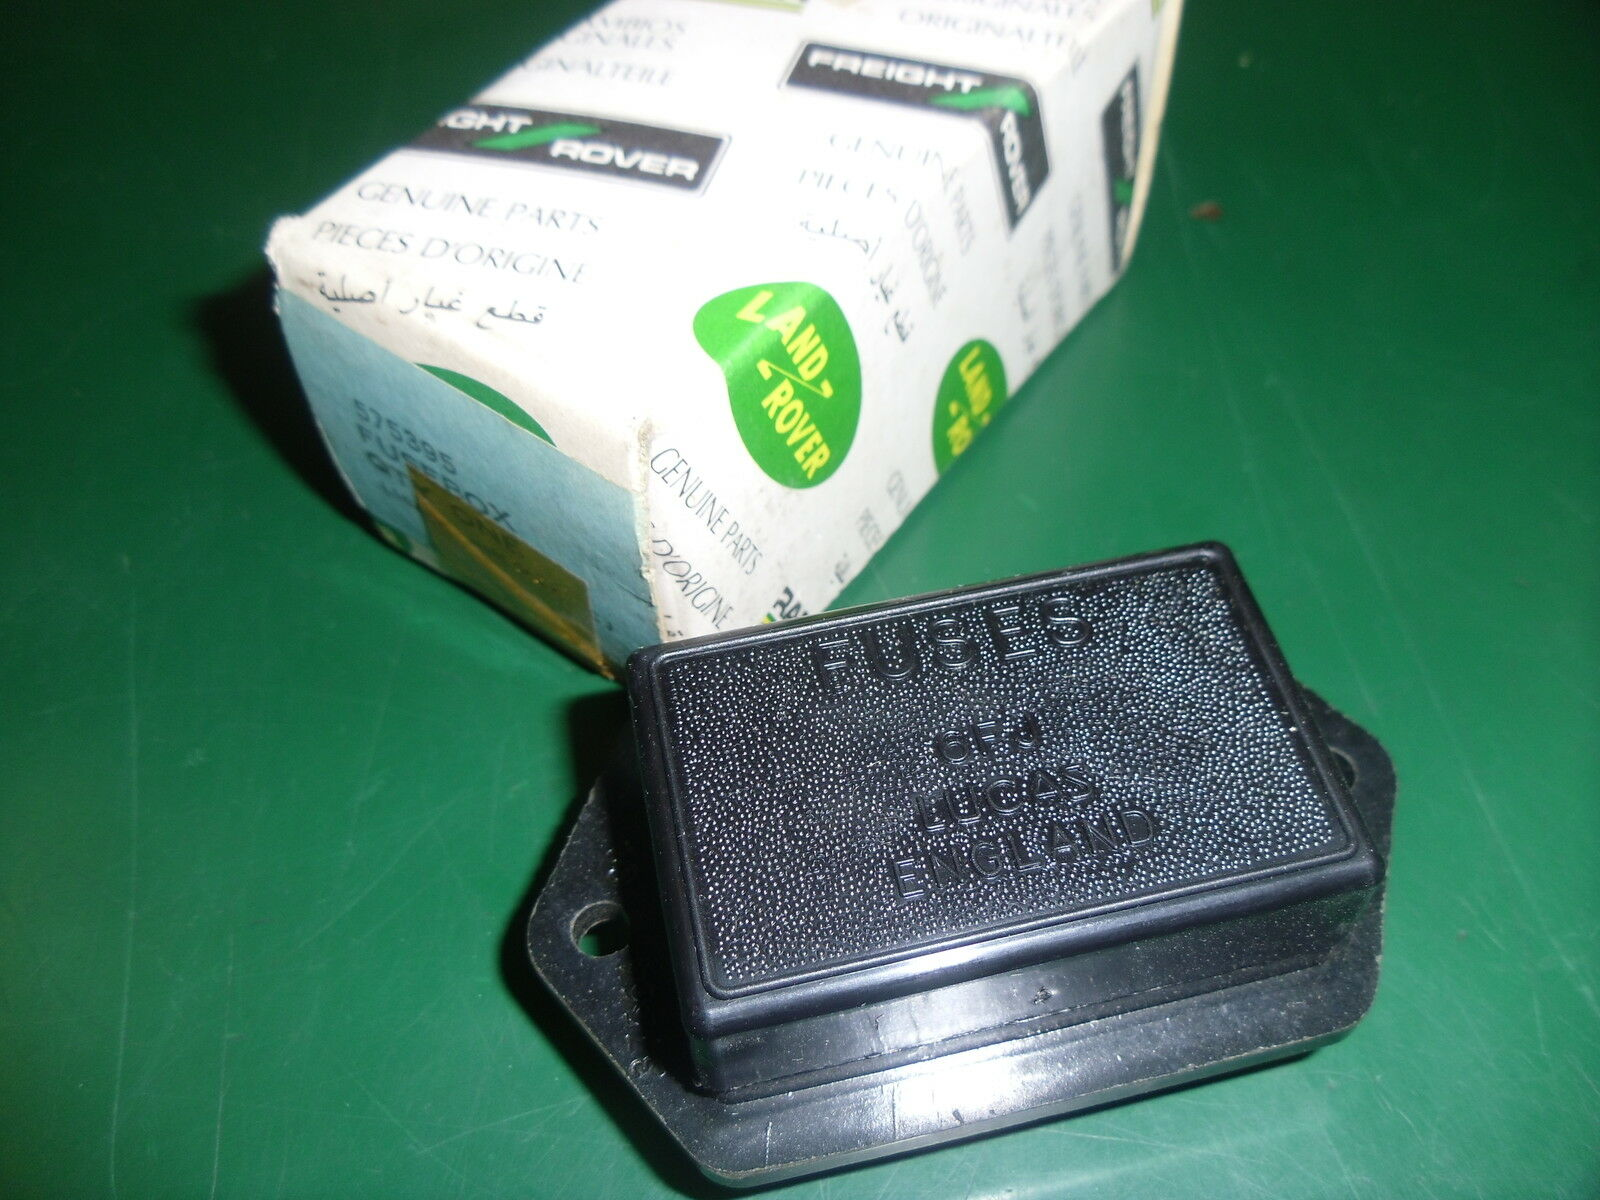 Land Rover Series 3 New Genuine Fuse Box 575395 1 of 1FREE Shipping ...